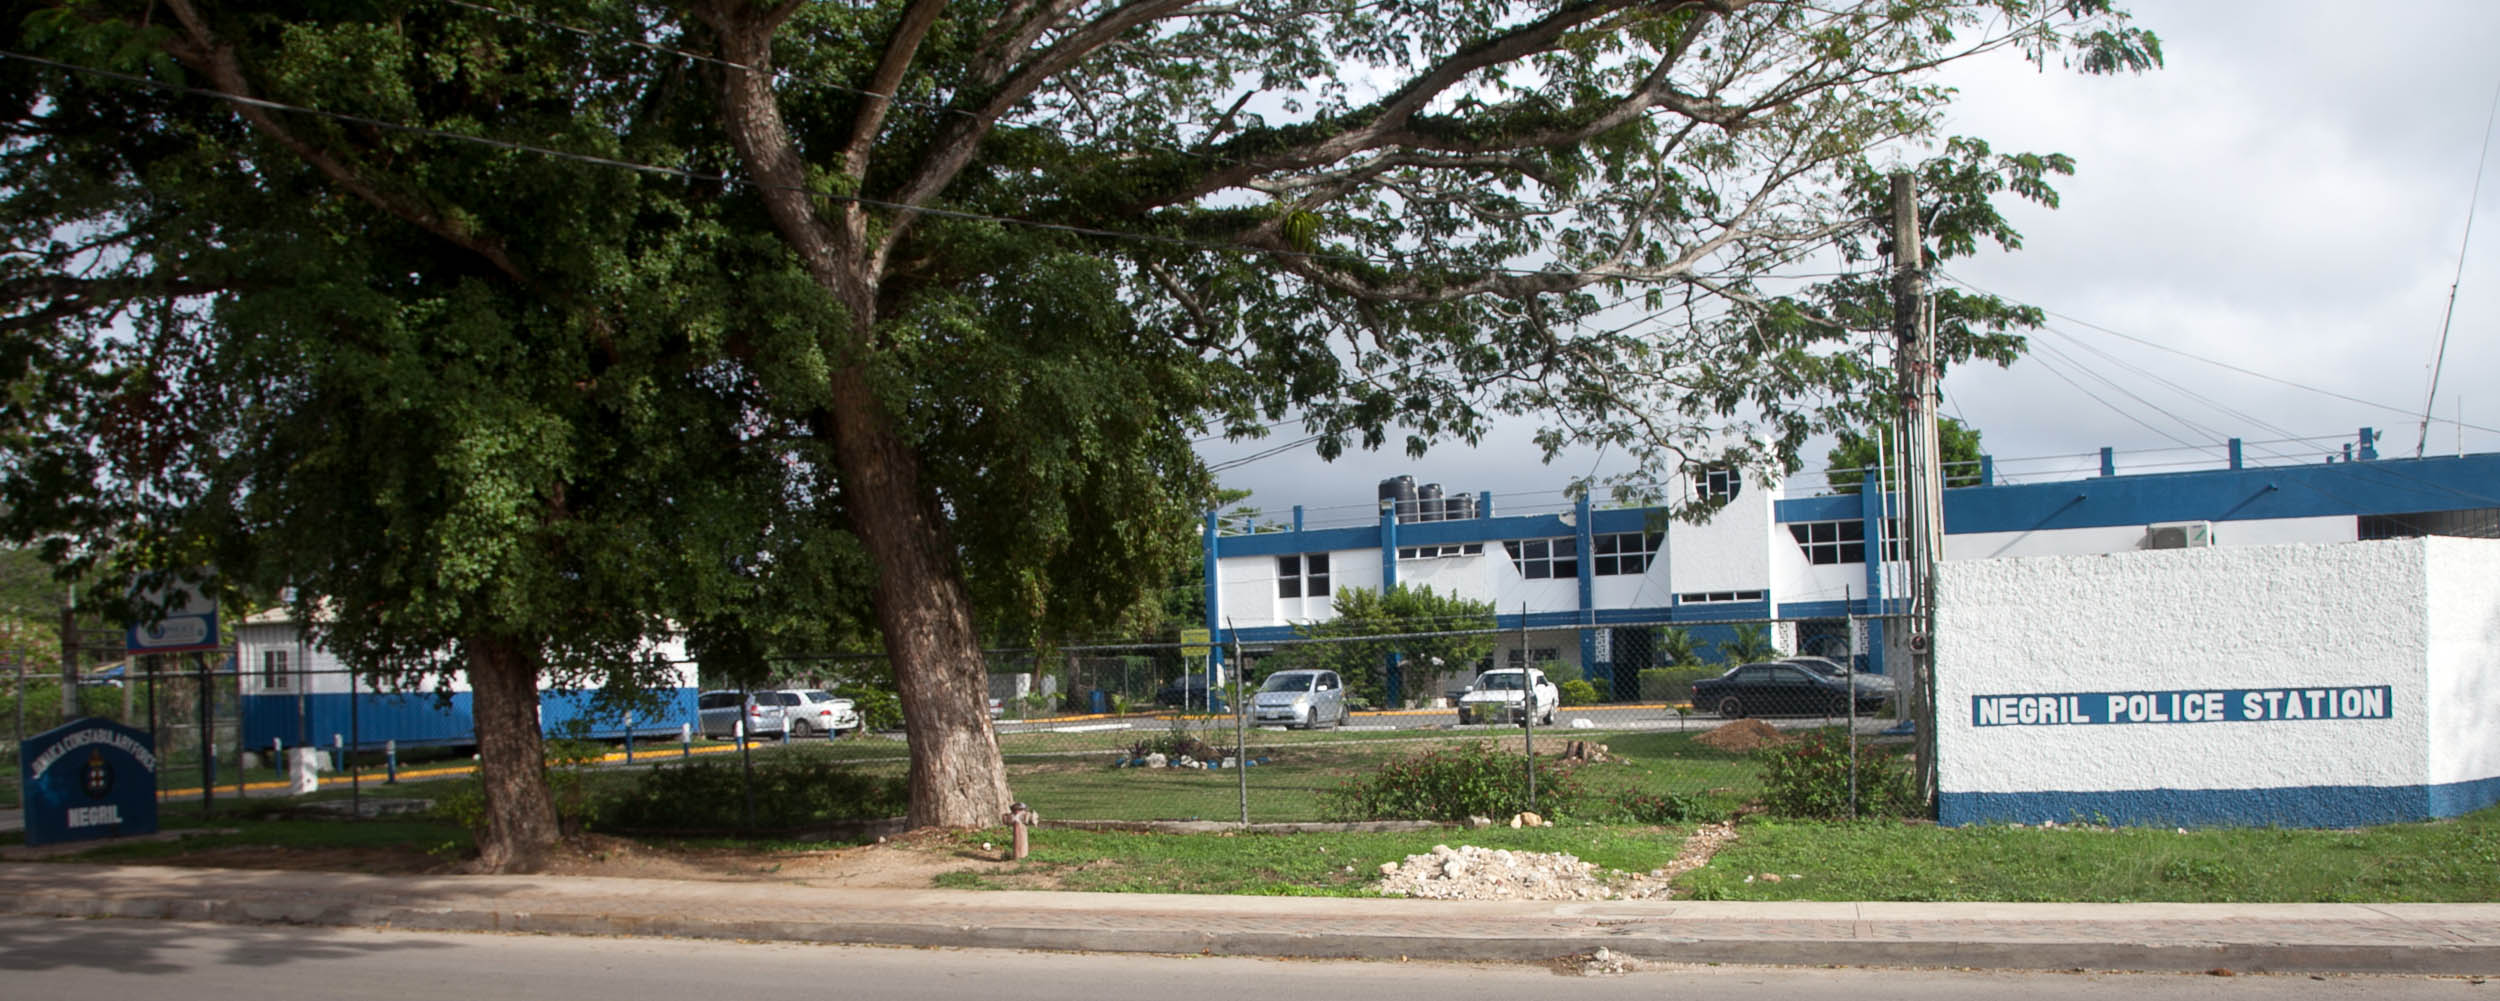 Negril Police Station, Negril Jamaica